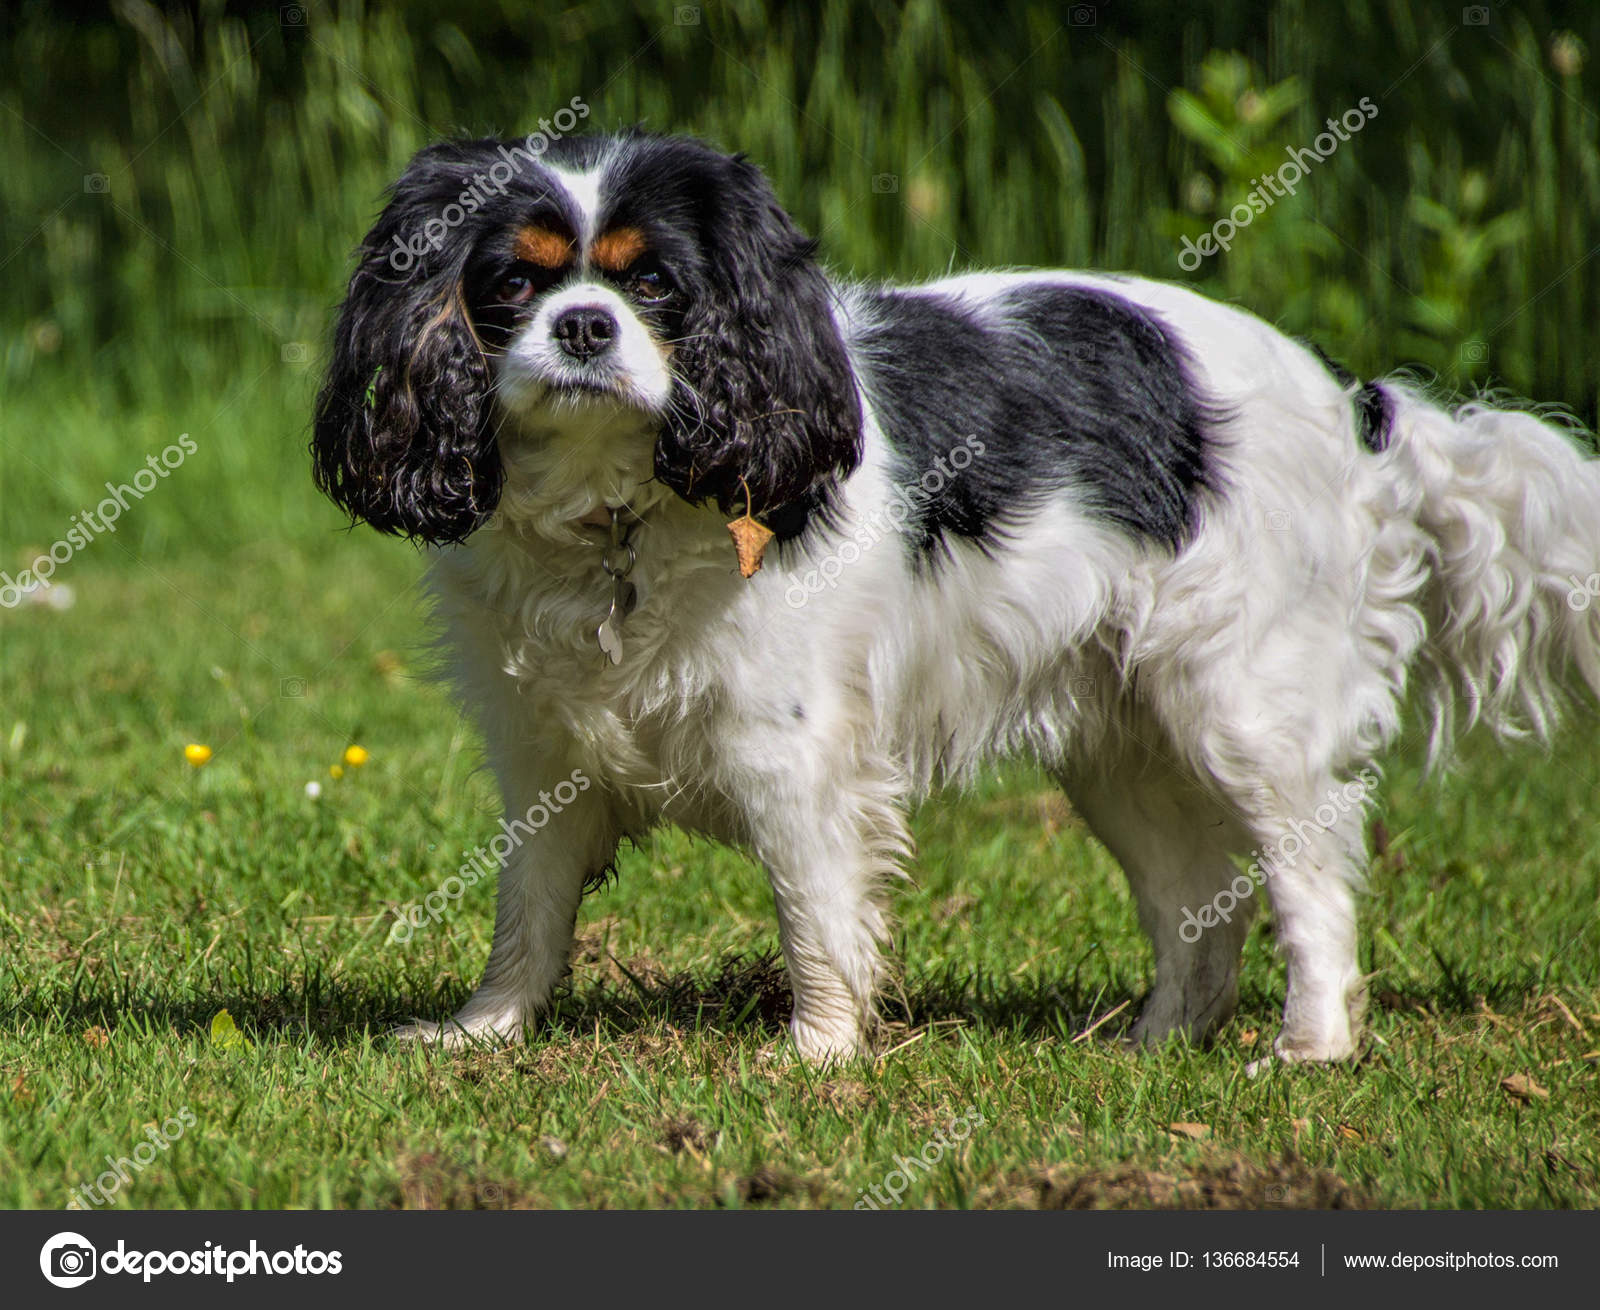 Female Tricolor Cavalier King Charles Spaniel Stock Photo C Traceyd22 136684554